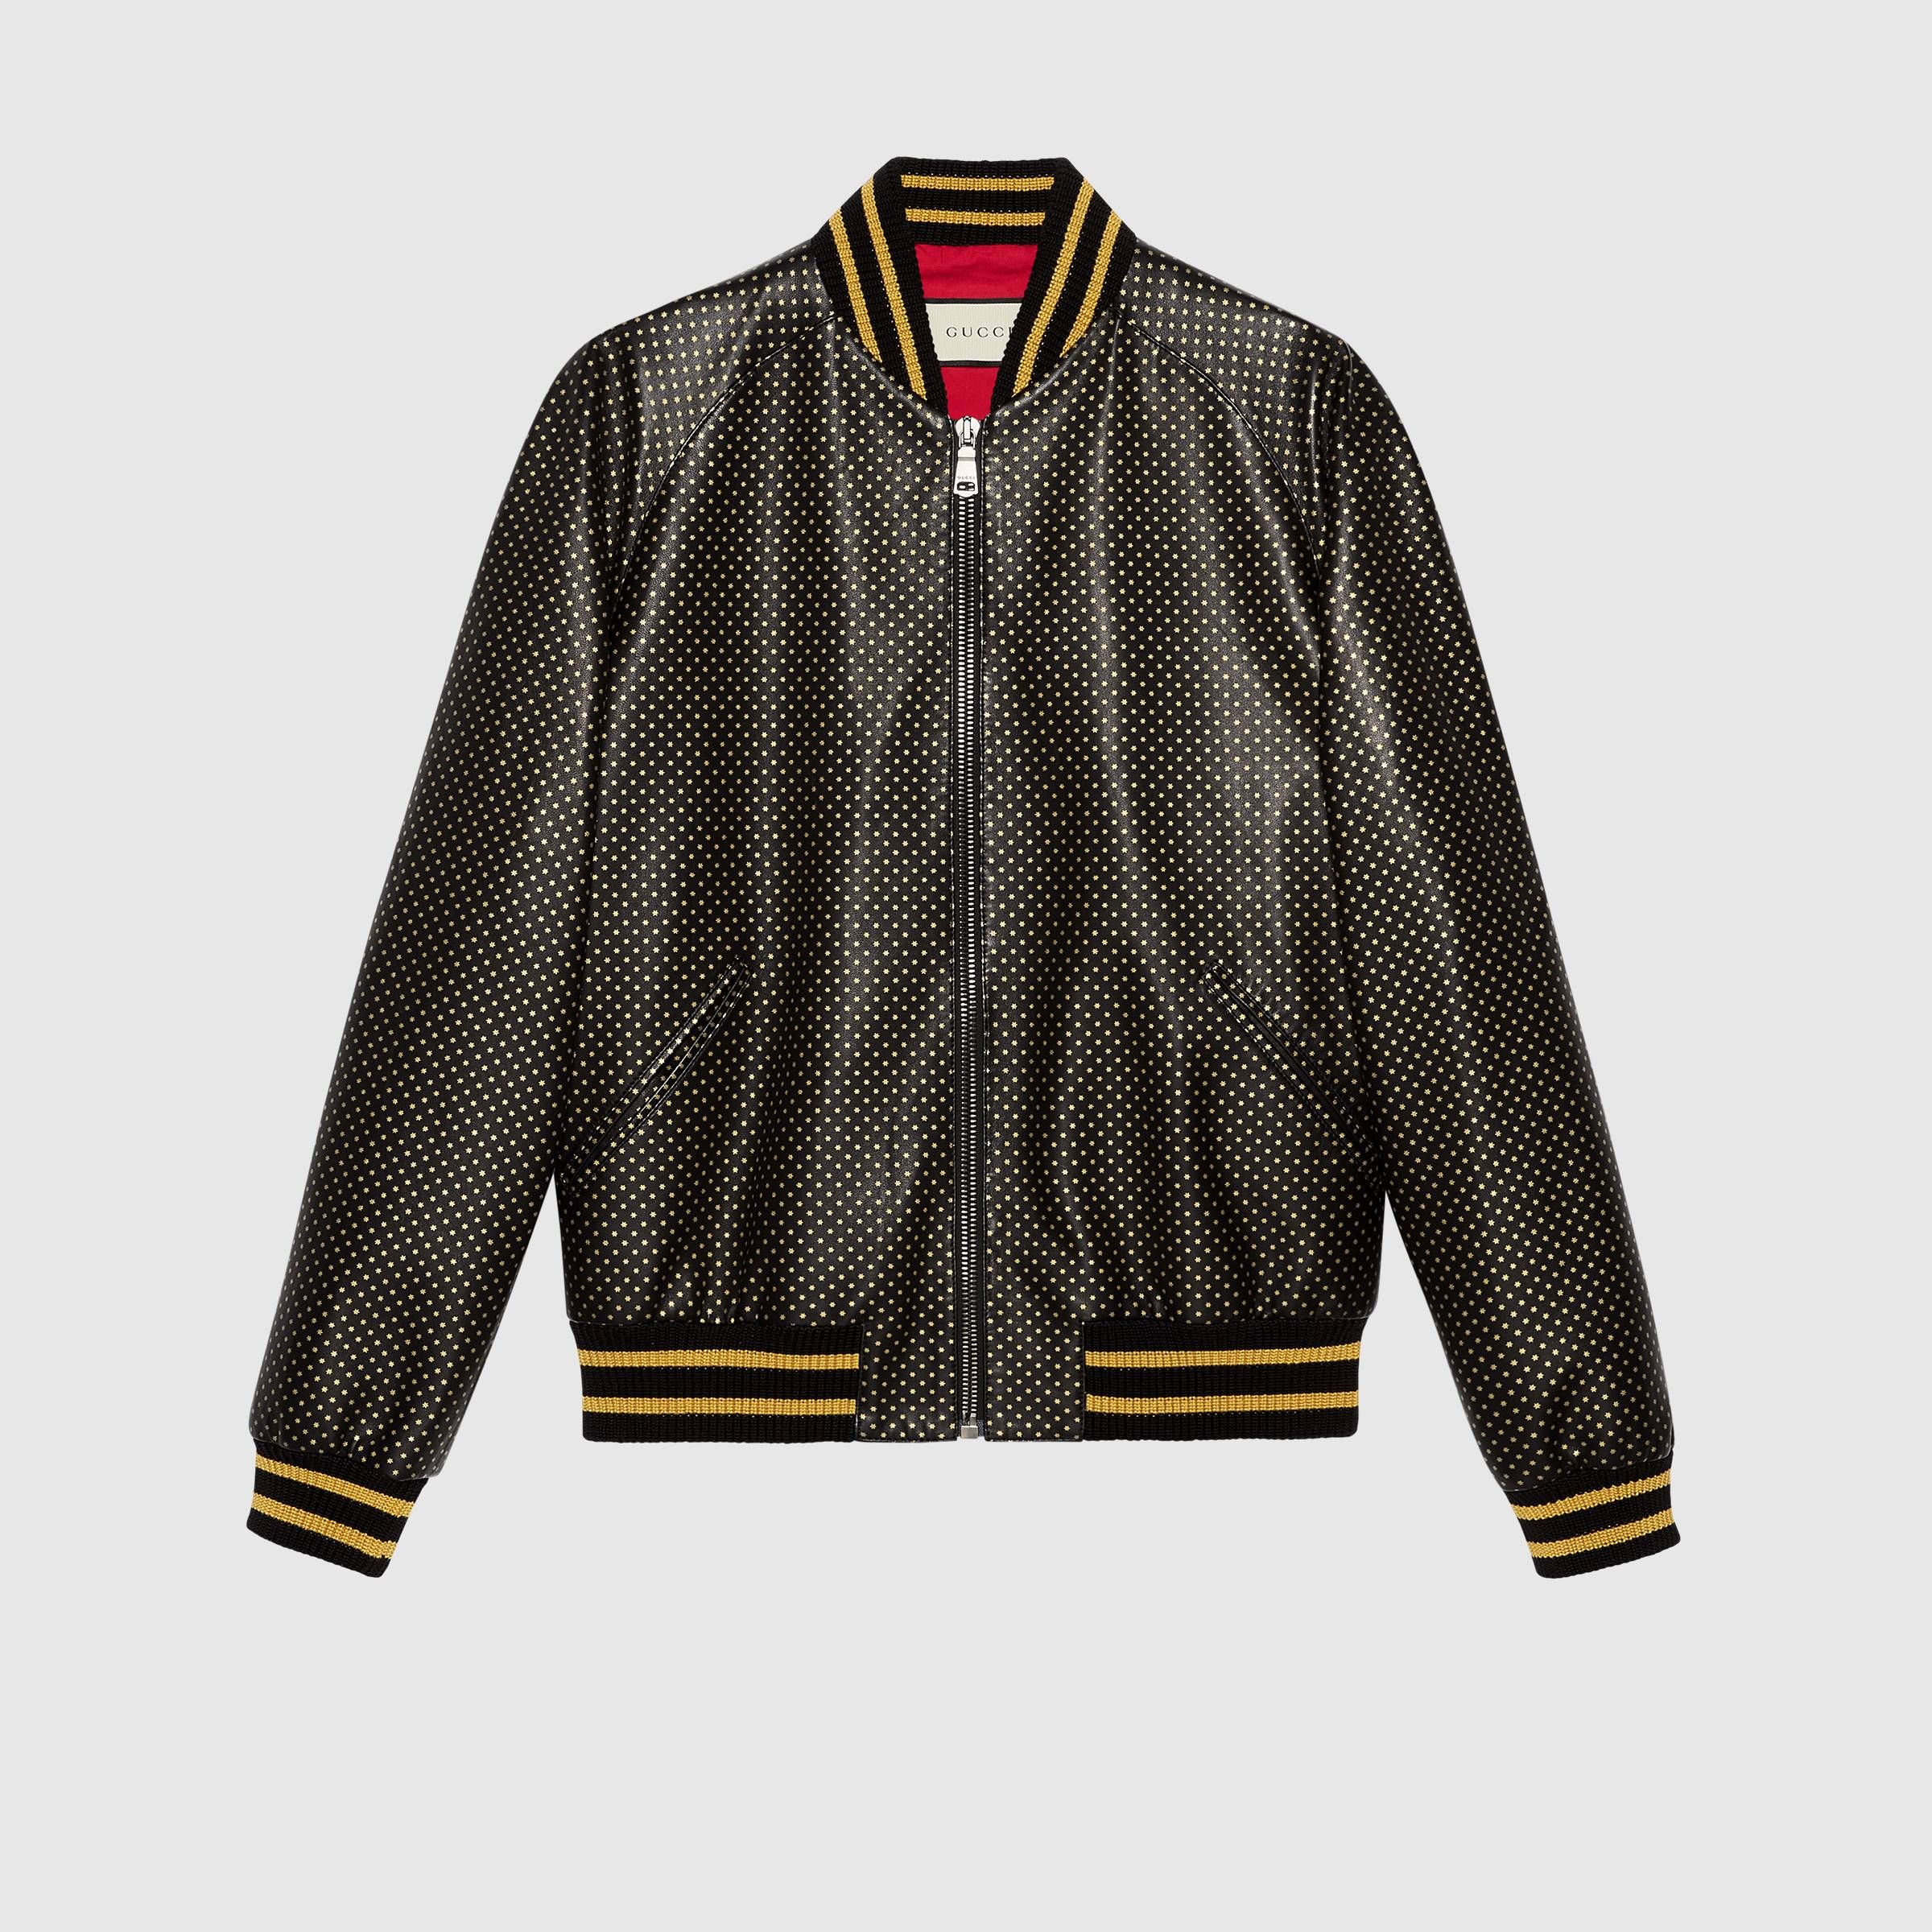 5b05c4f3add Guccy leather bomber jacket - Gucci Men s Leather   Casual Jackets  519556XG6411815